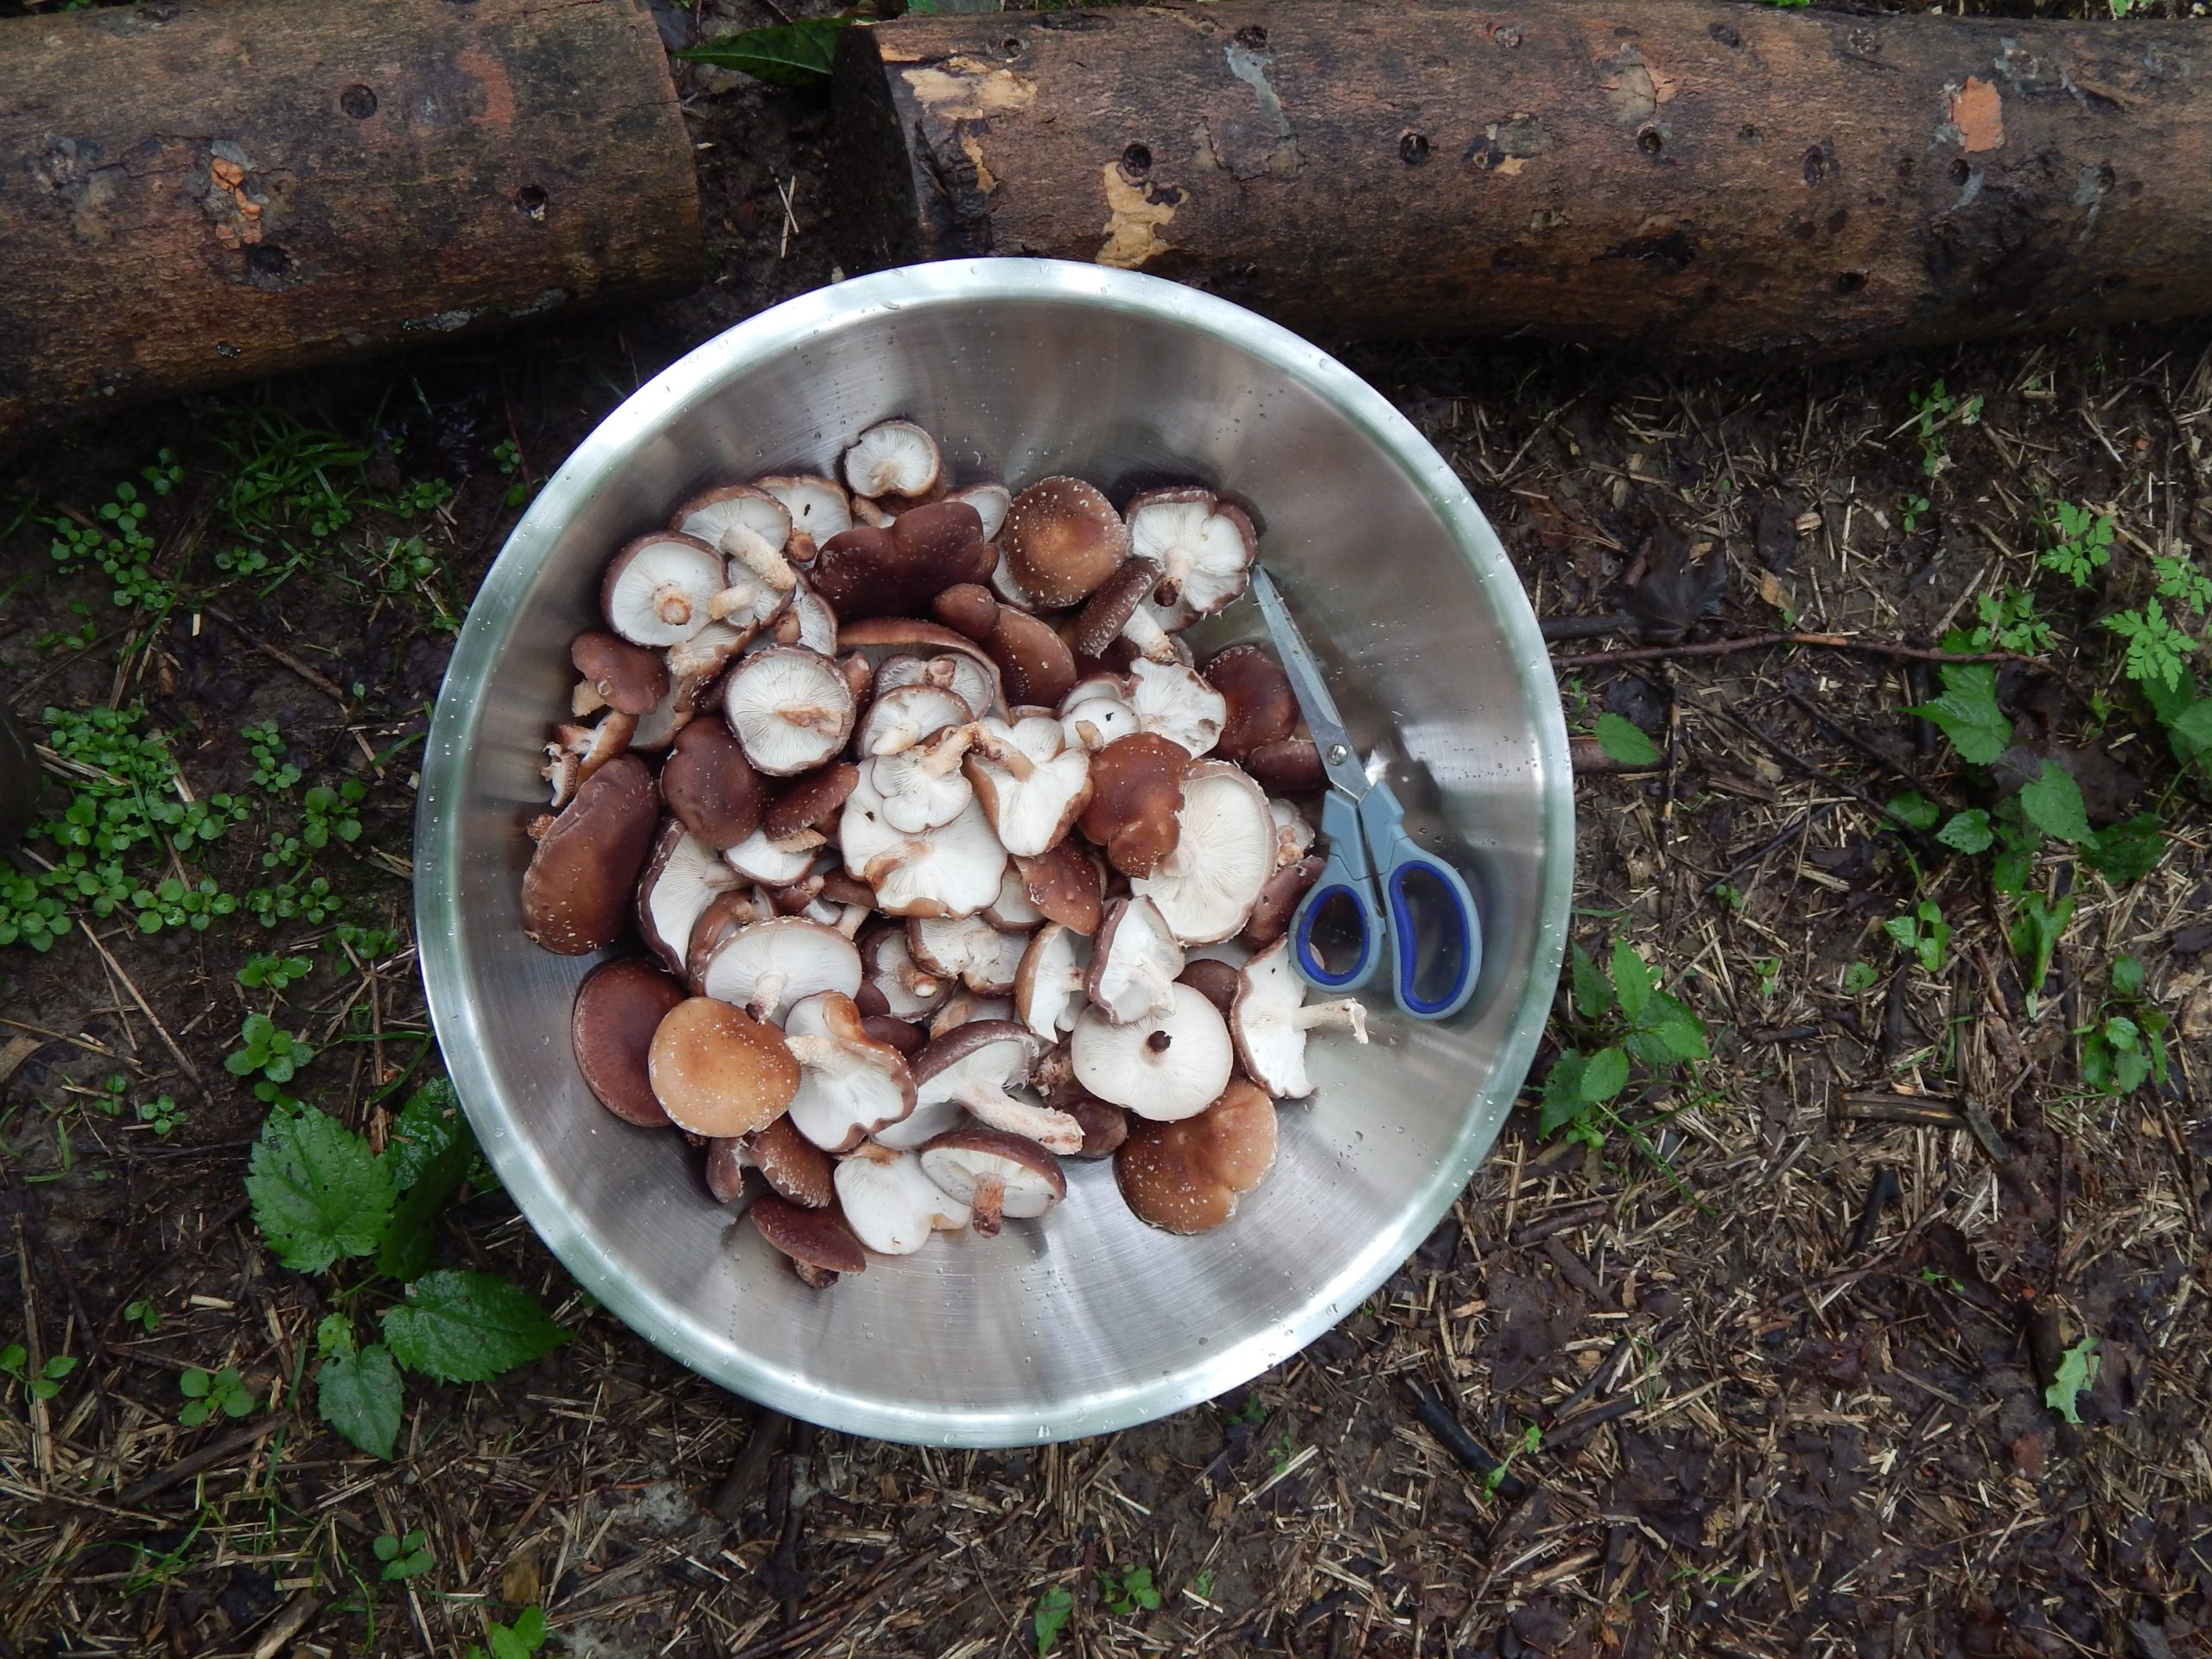 Use scissors to cut mushrooms instead of a knife.